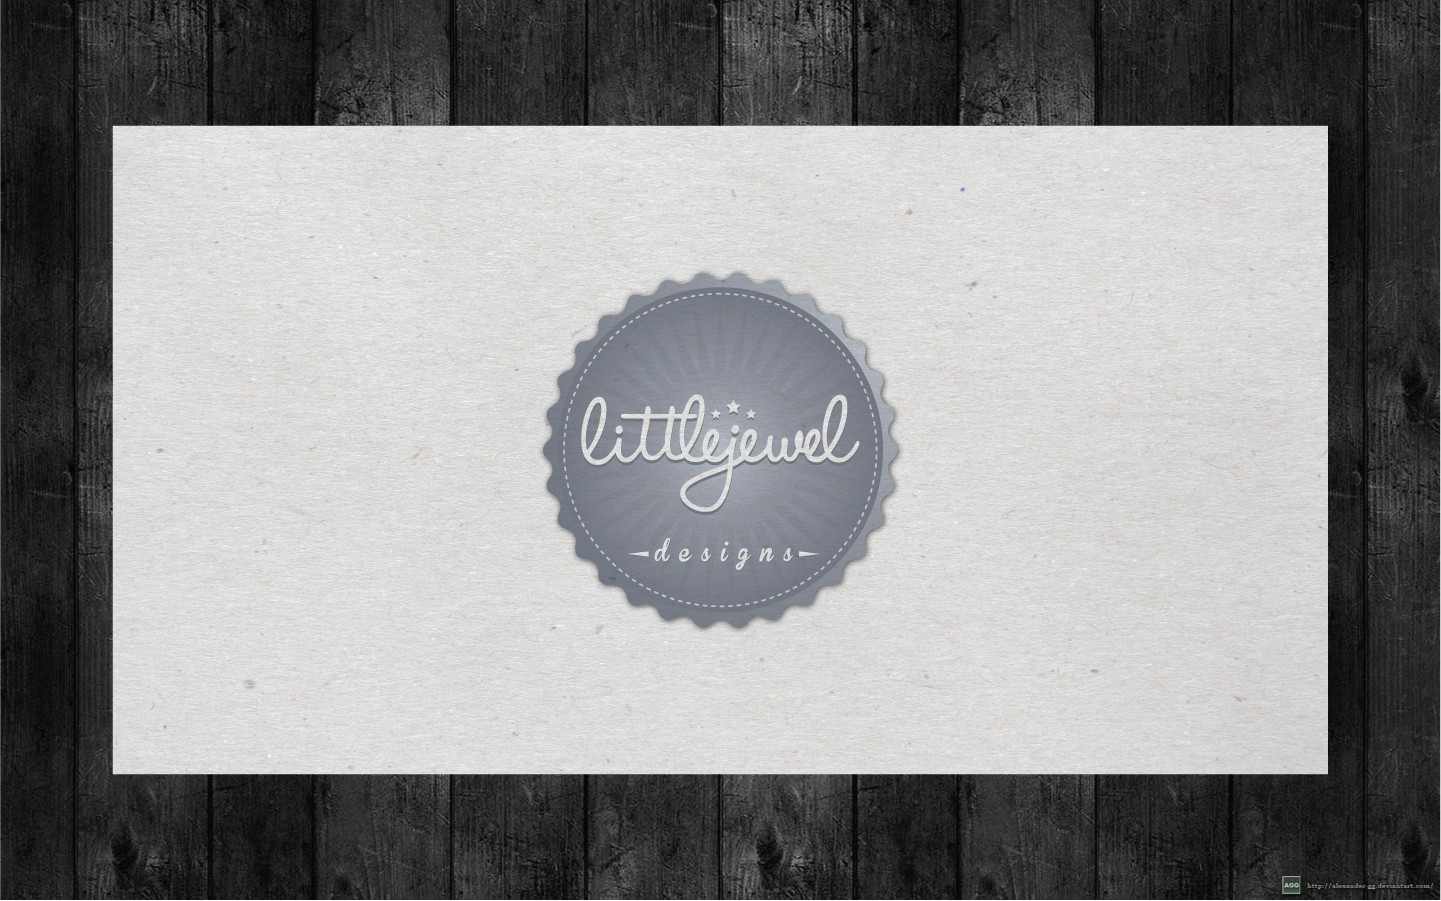 New logo wanted for Little Jewel Designs